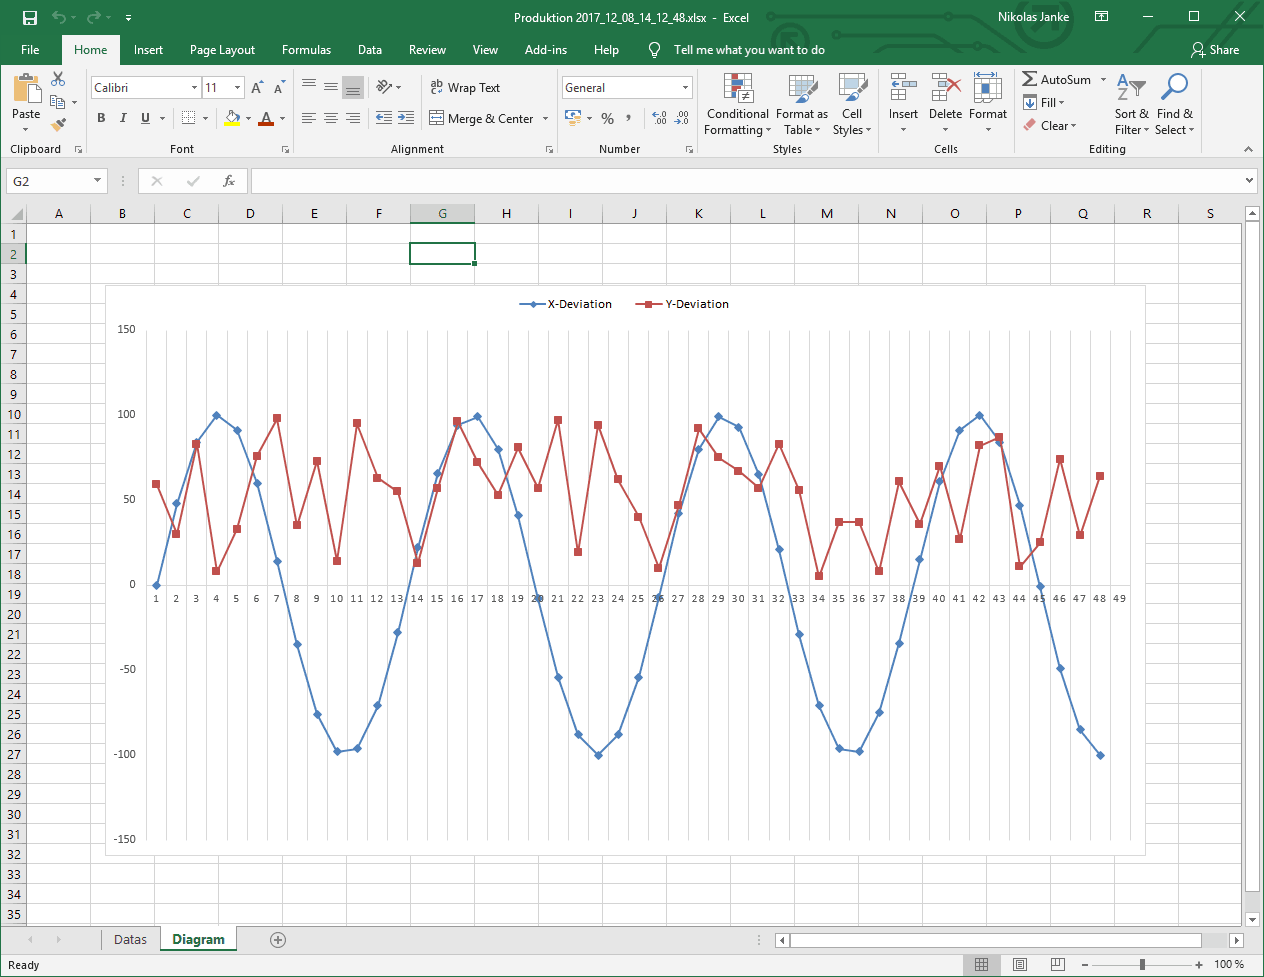 It's simple: Writing Excel files with the Siemens S7 - PLC Data Tools